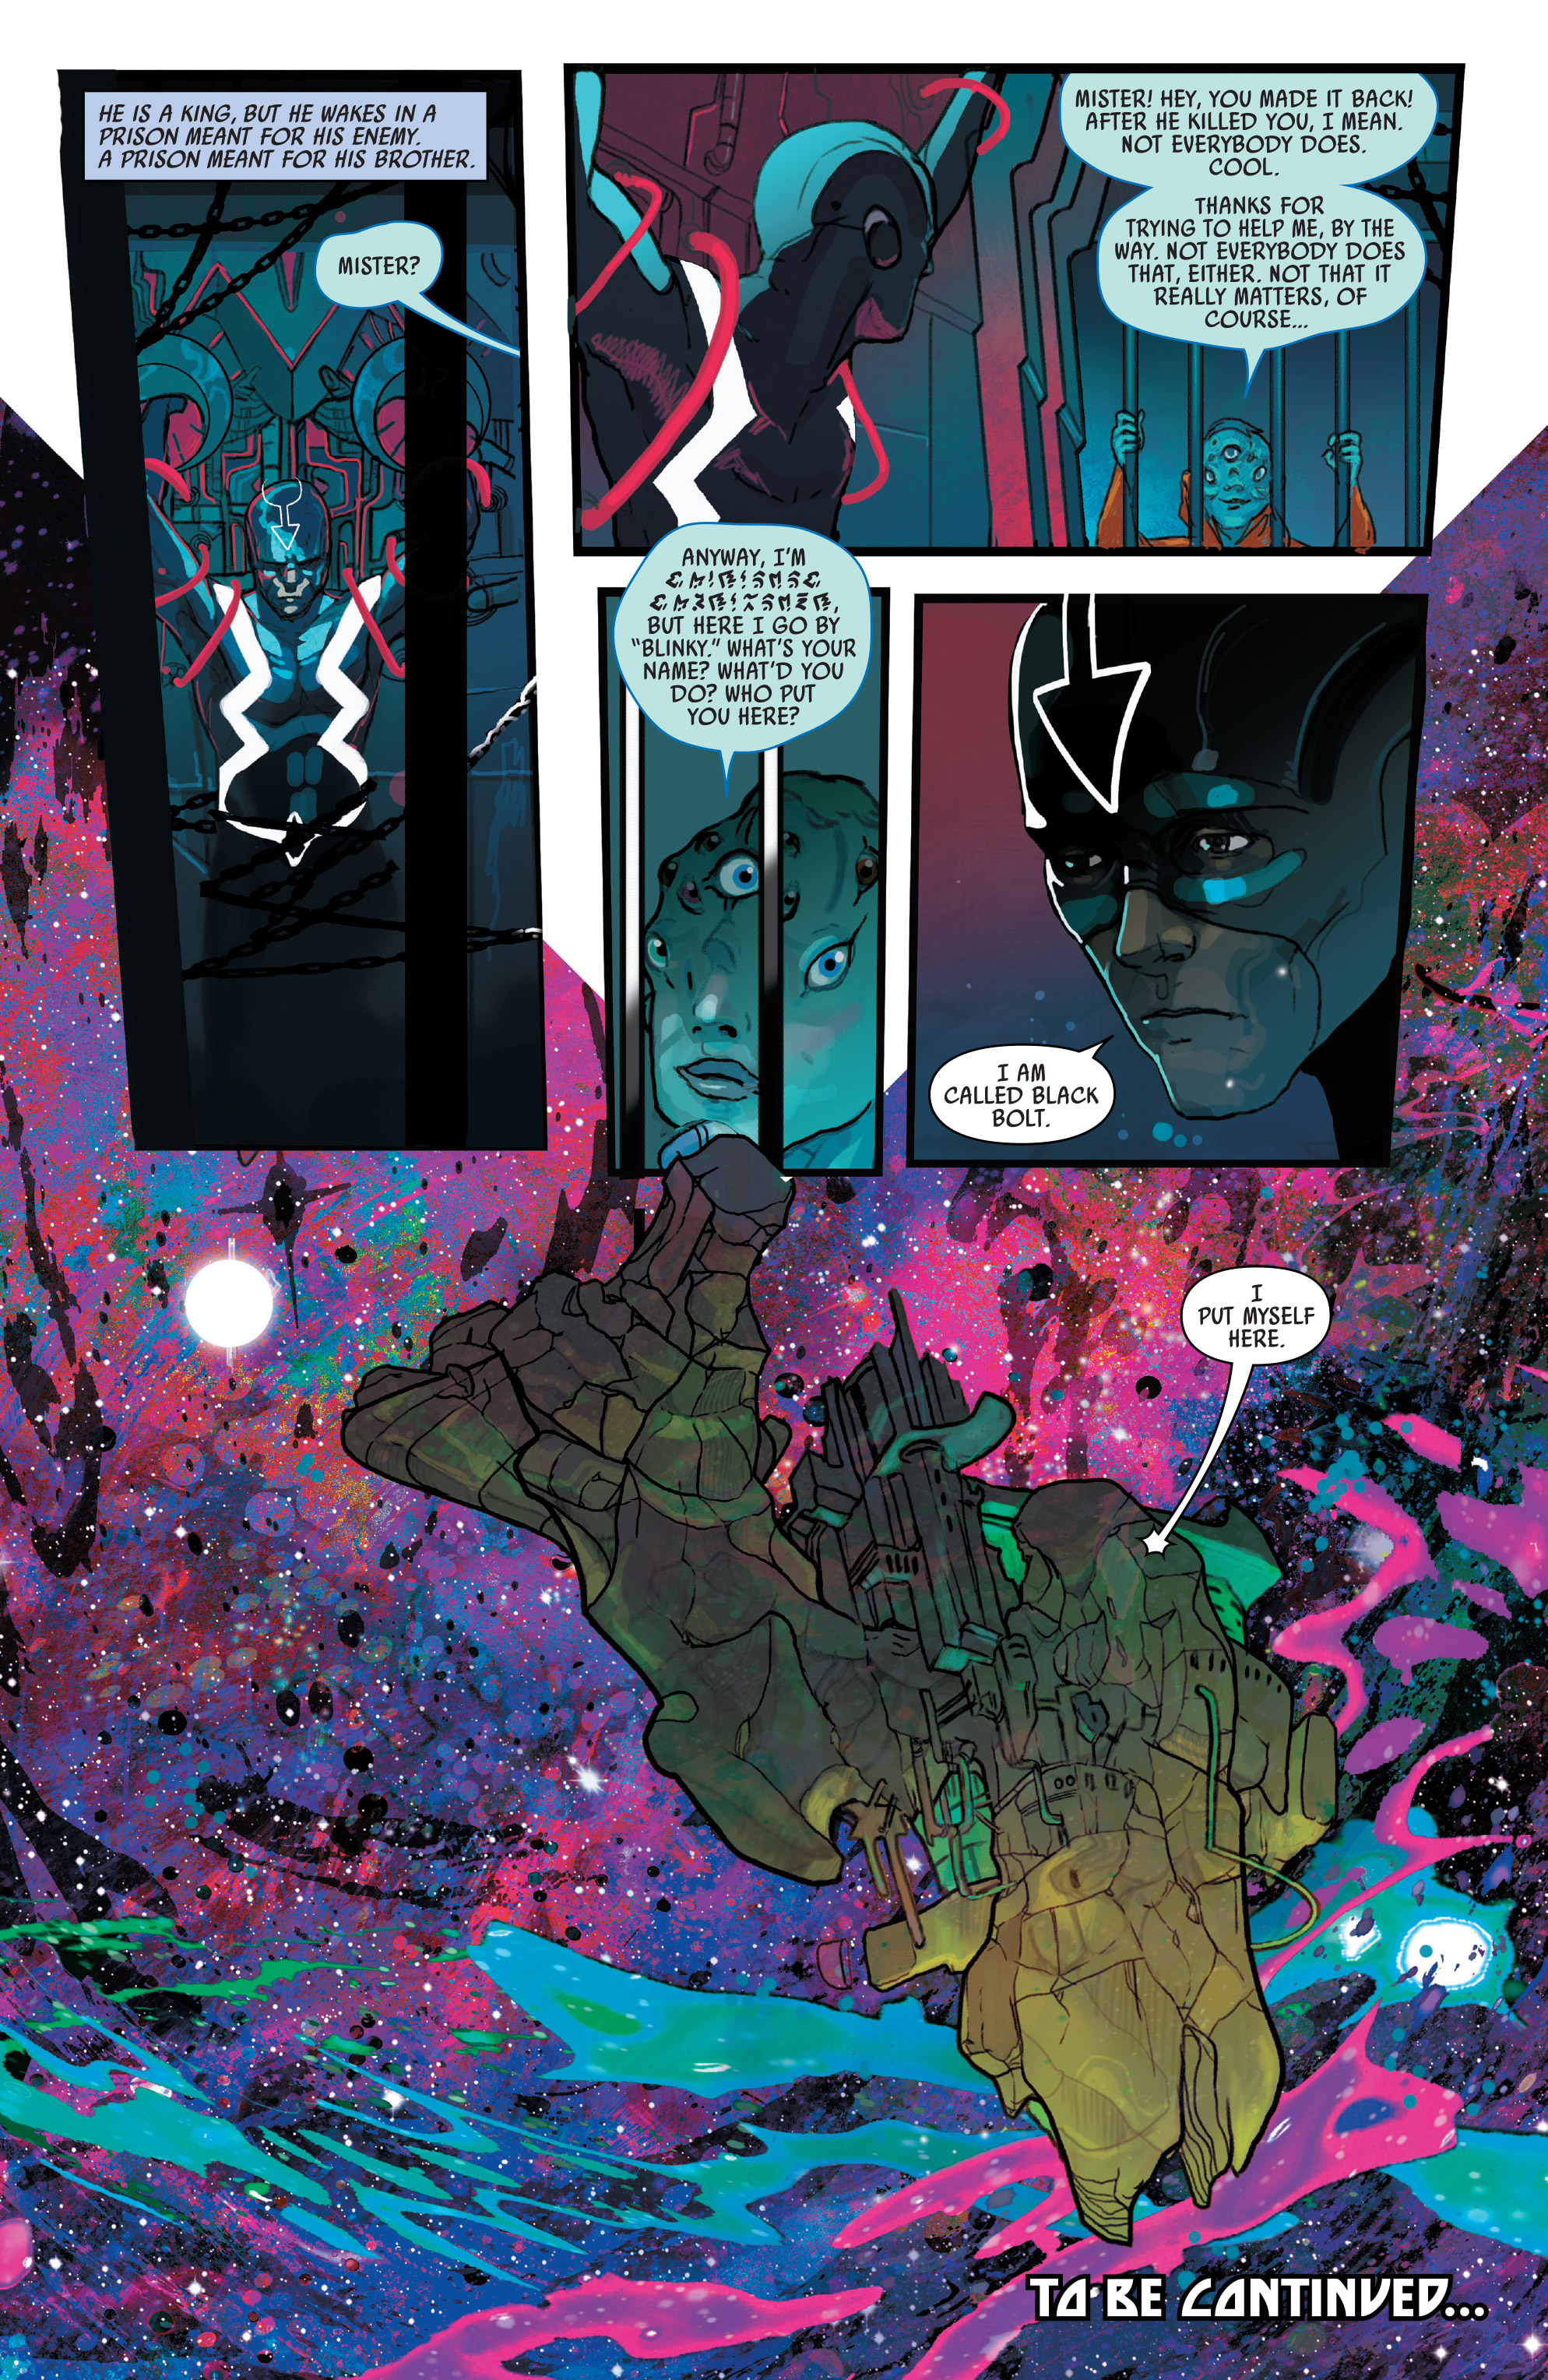 Read online Black Bolt comic -  Issue #1 - 22